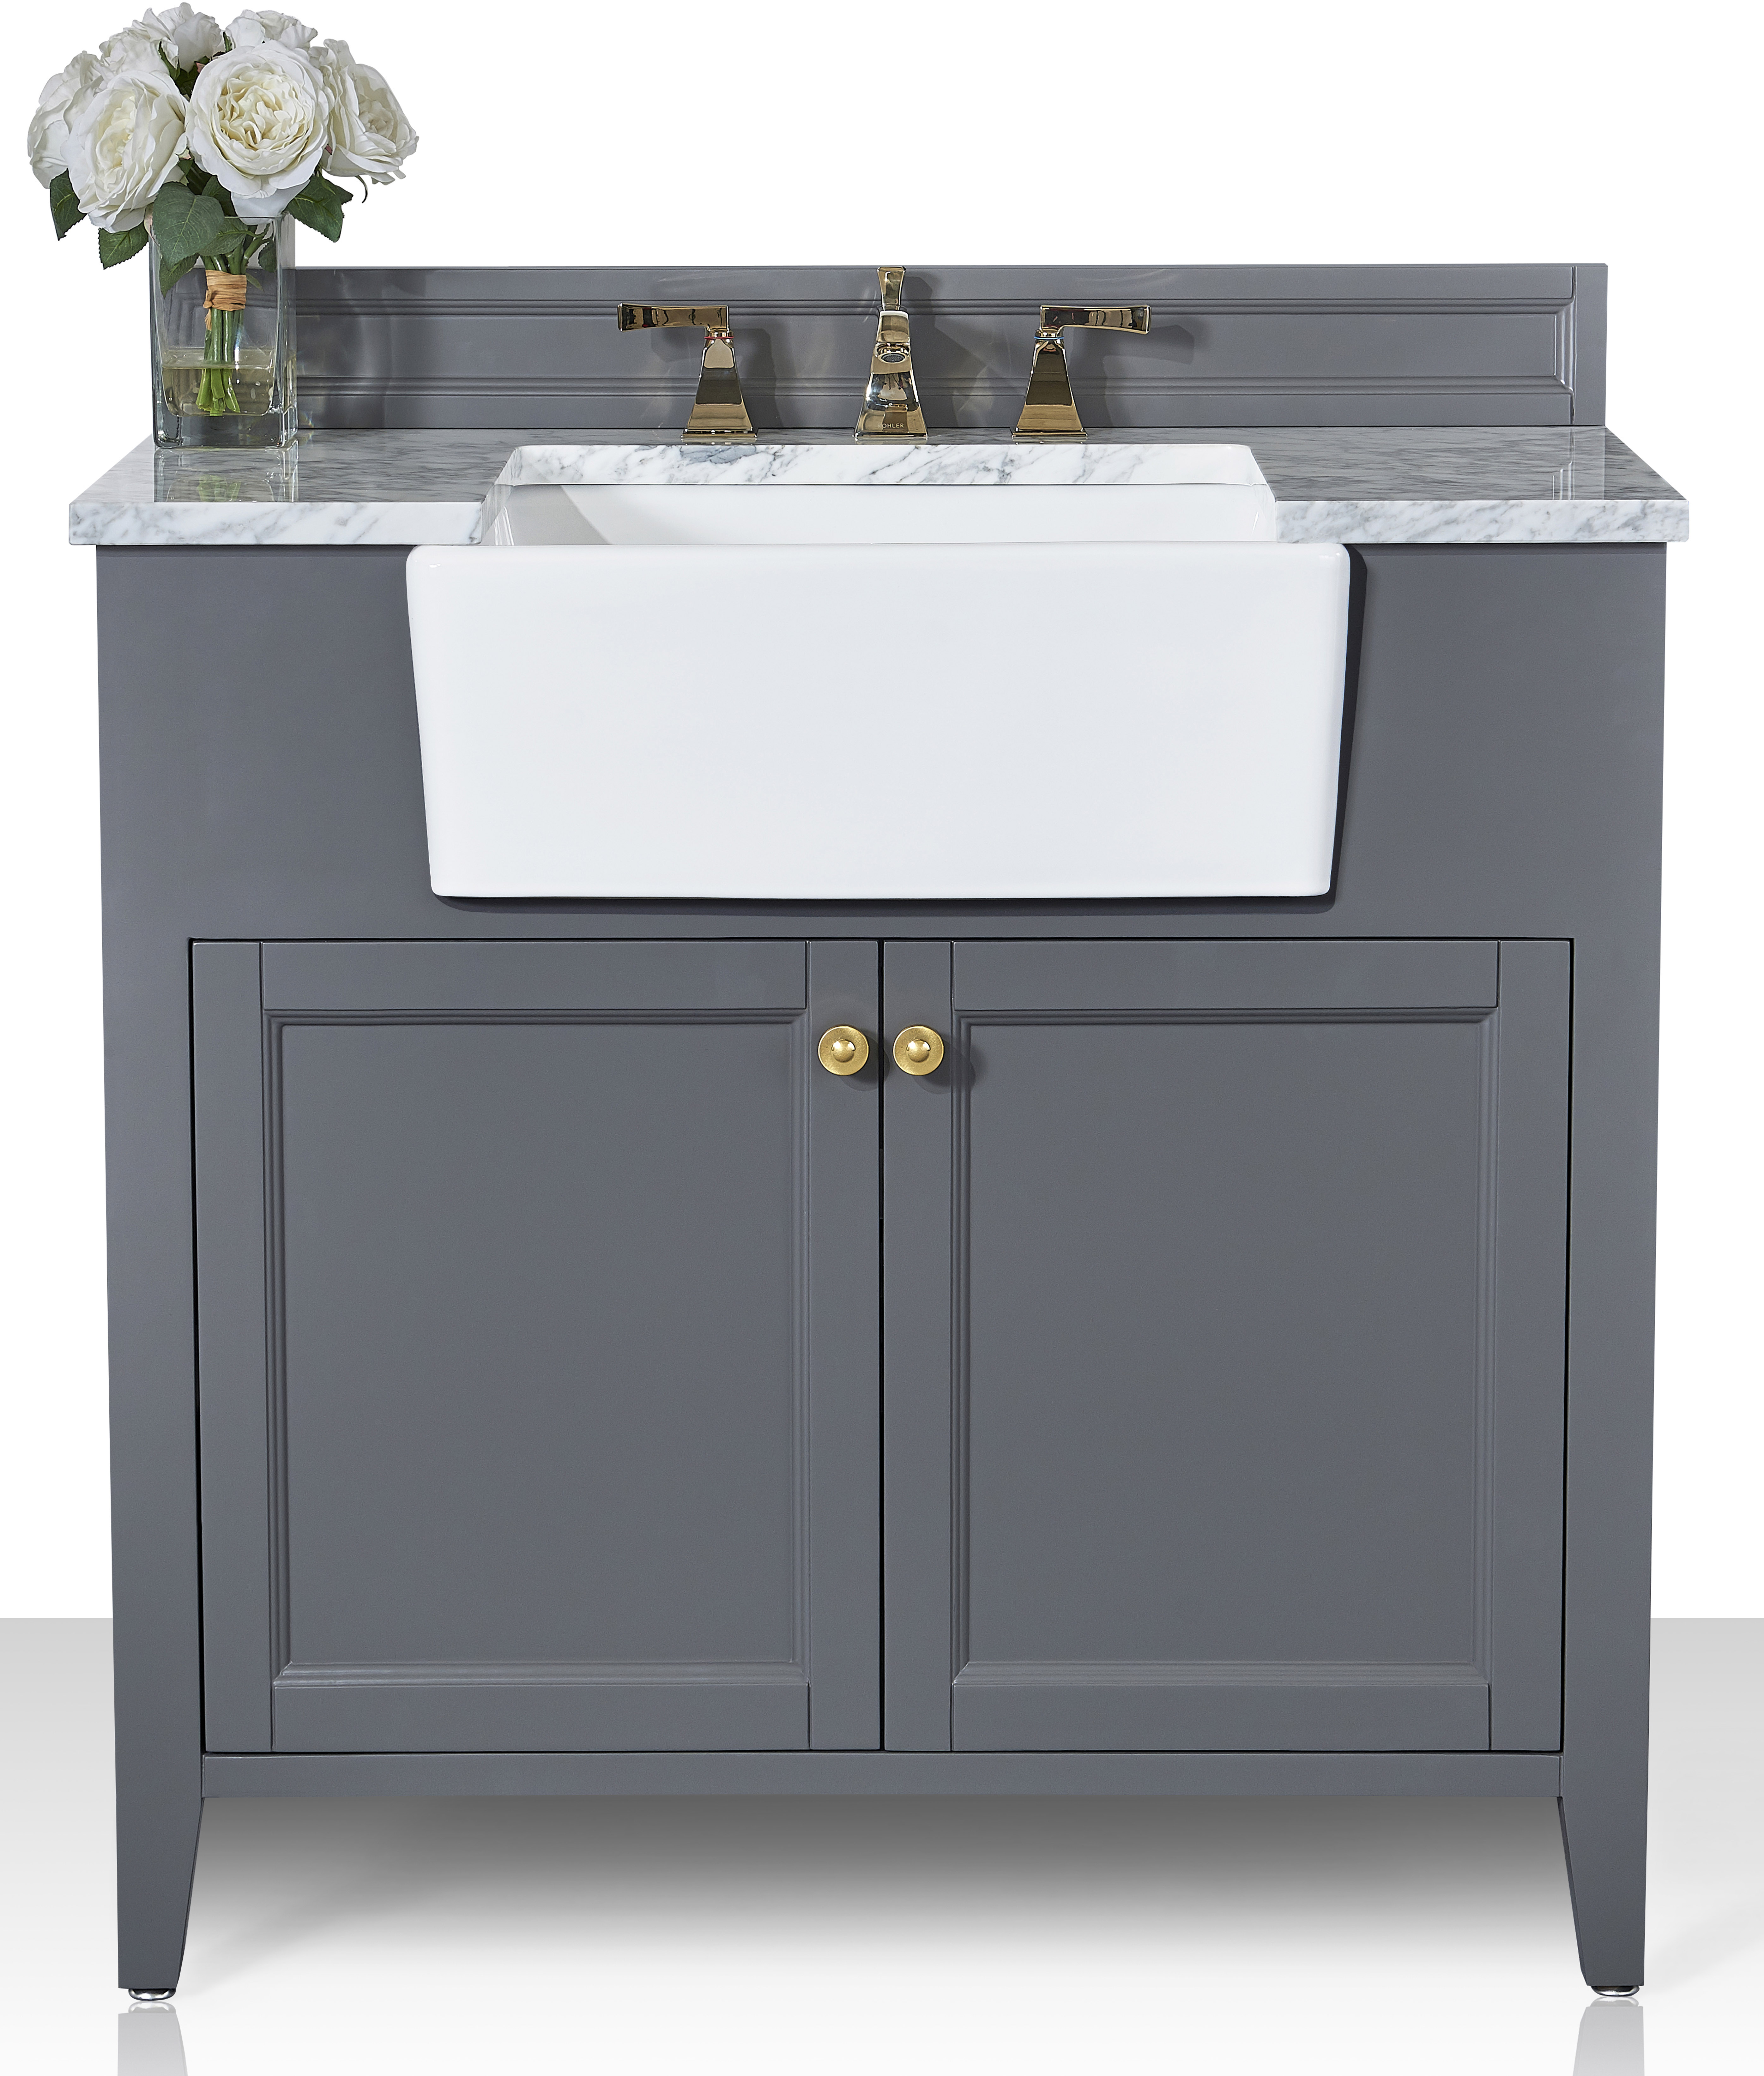 """36"""" Bath Vanity Set in Sapphire Gray with Italian Carrara White Marble Vanity Top and White Undermount Basin with Gold Hardware"""